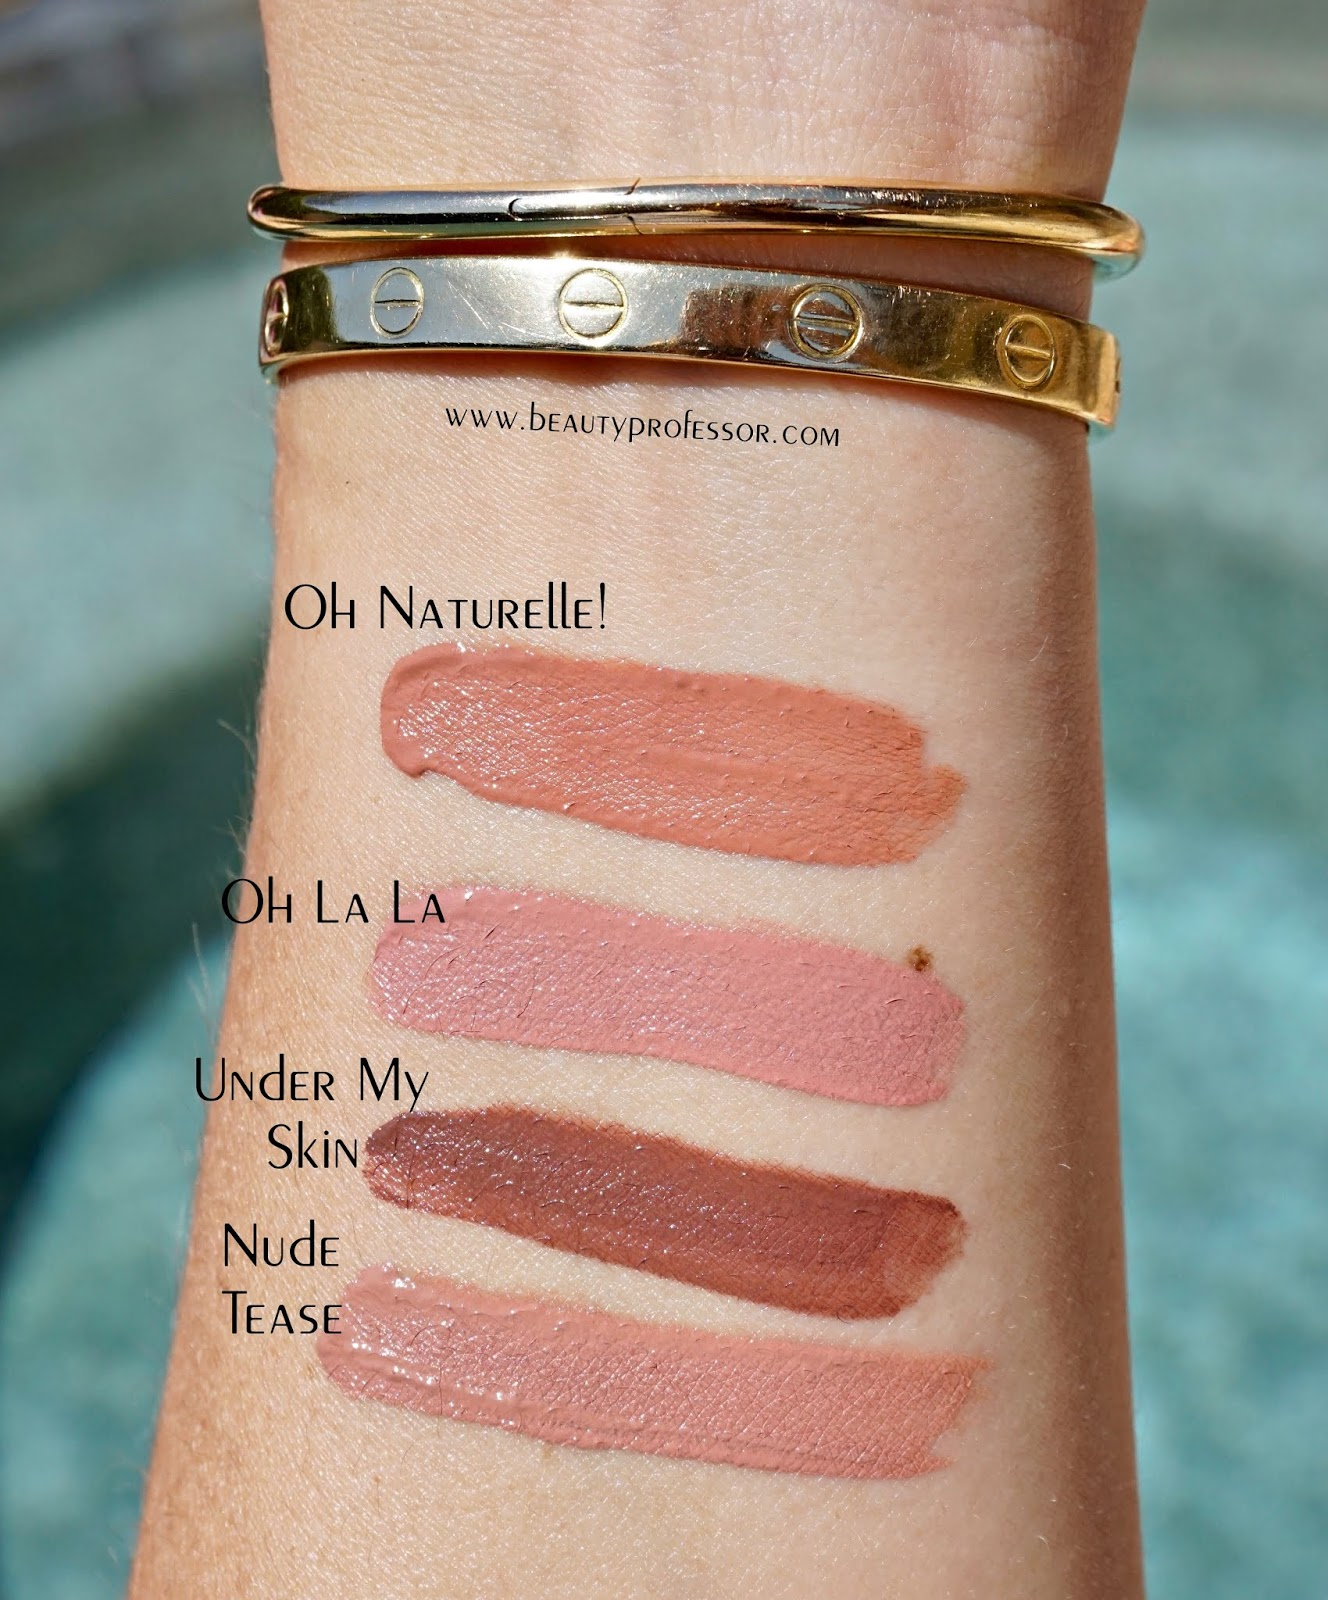 Estee Lauder Violette Oh Naturelle Pure Color Envy Paint on Liquid Lip Color swatches